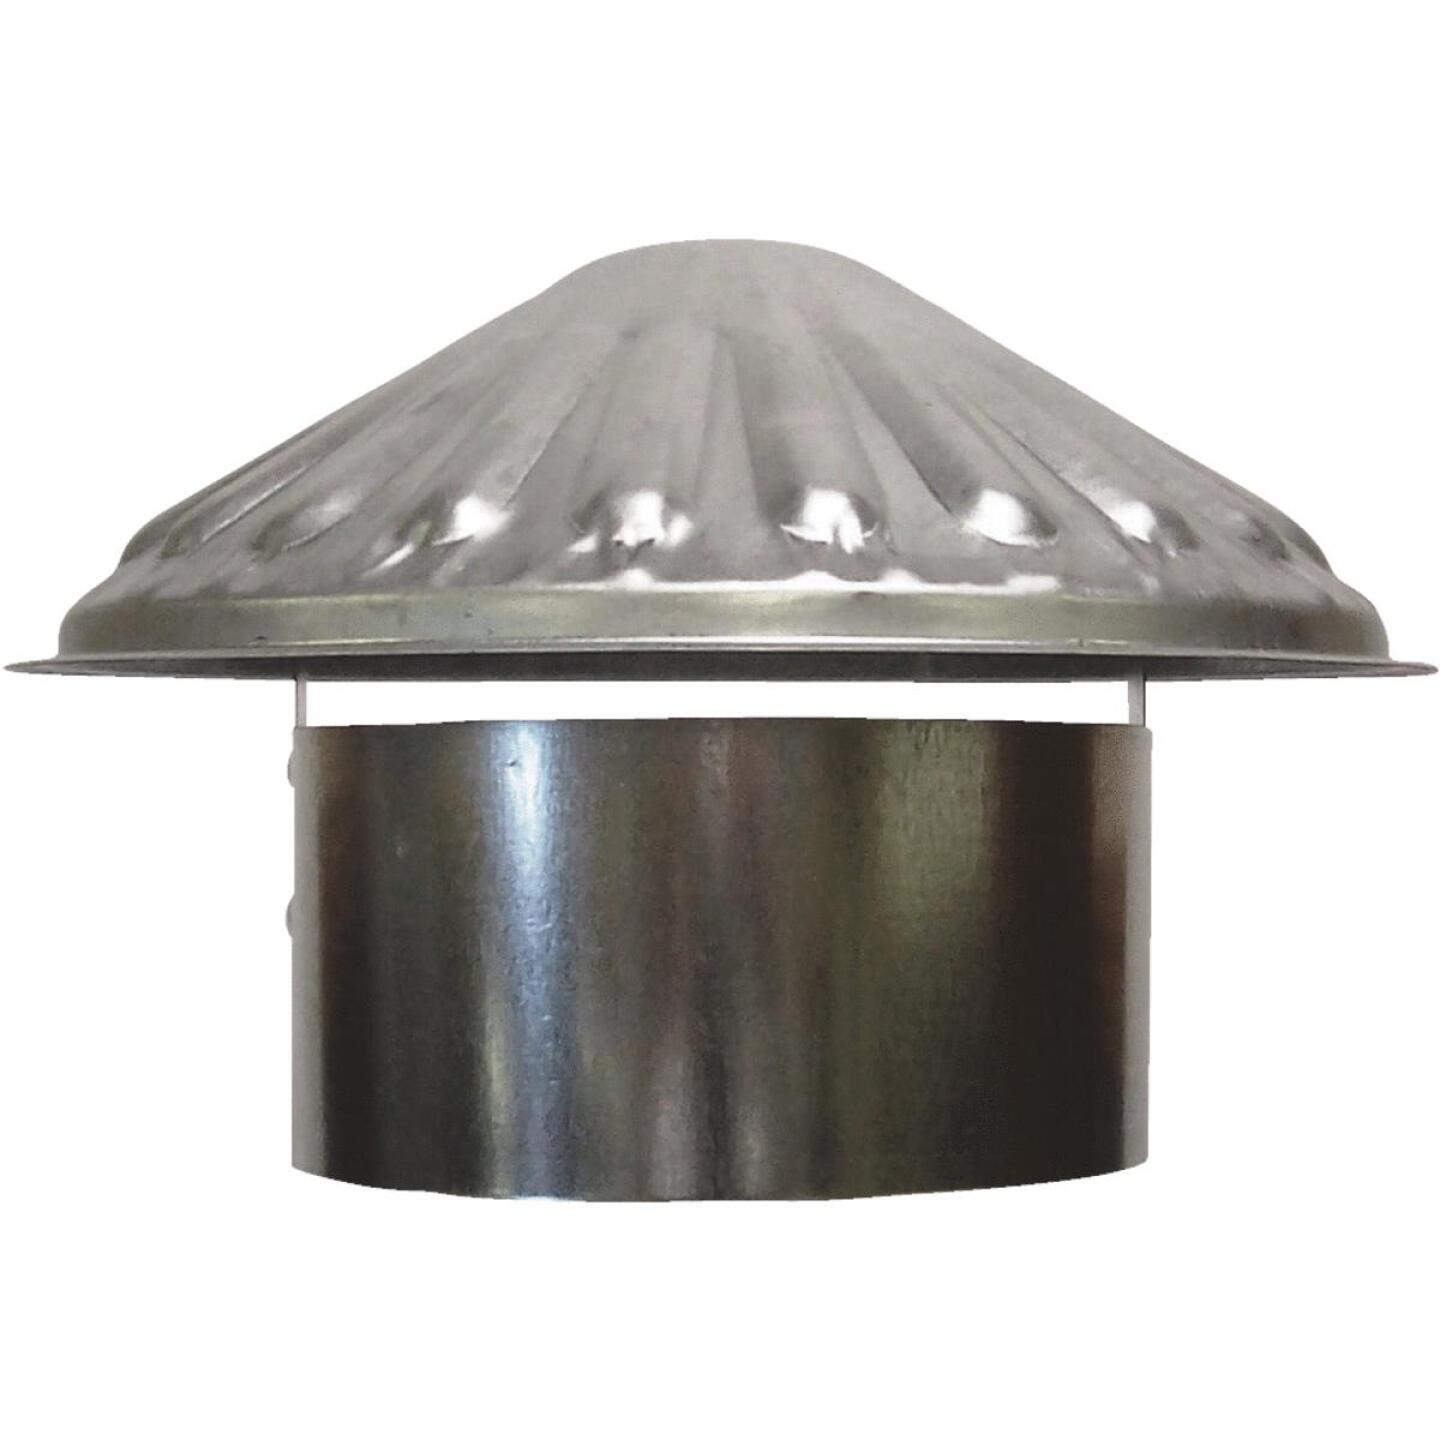 S & K Galvanized Steel 6 In. x 9-1/2 In. Vent Pipe Cap Image 1